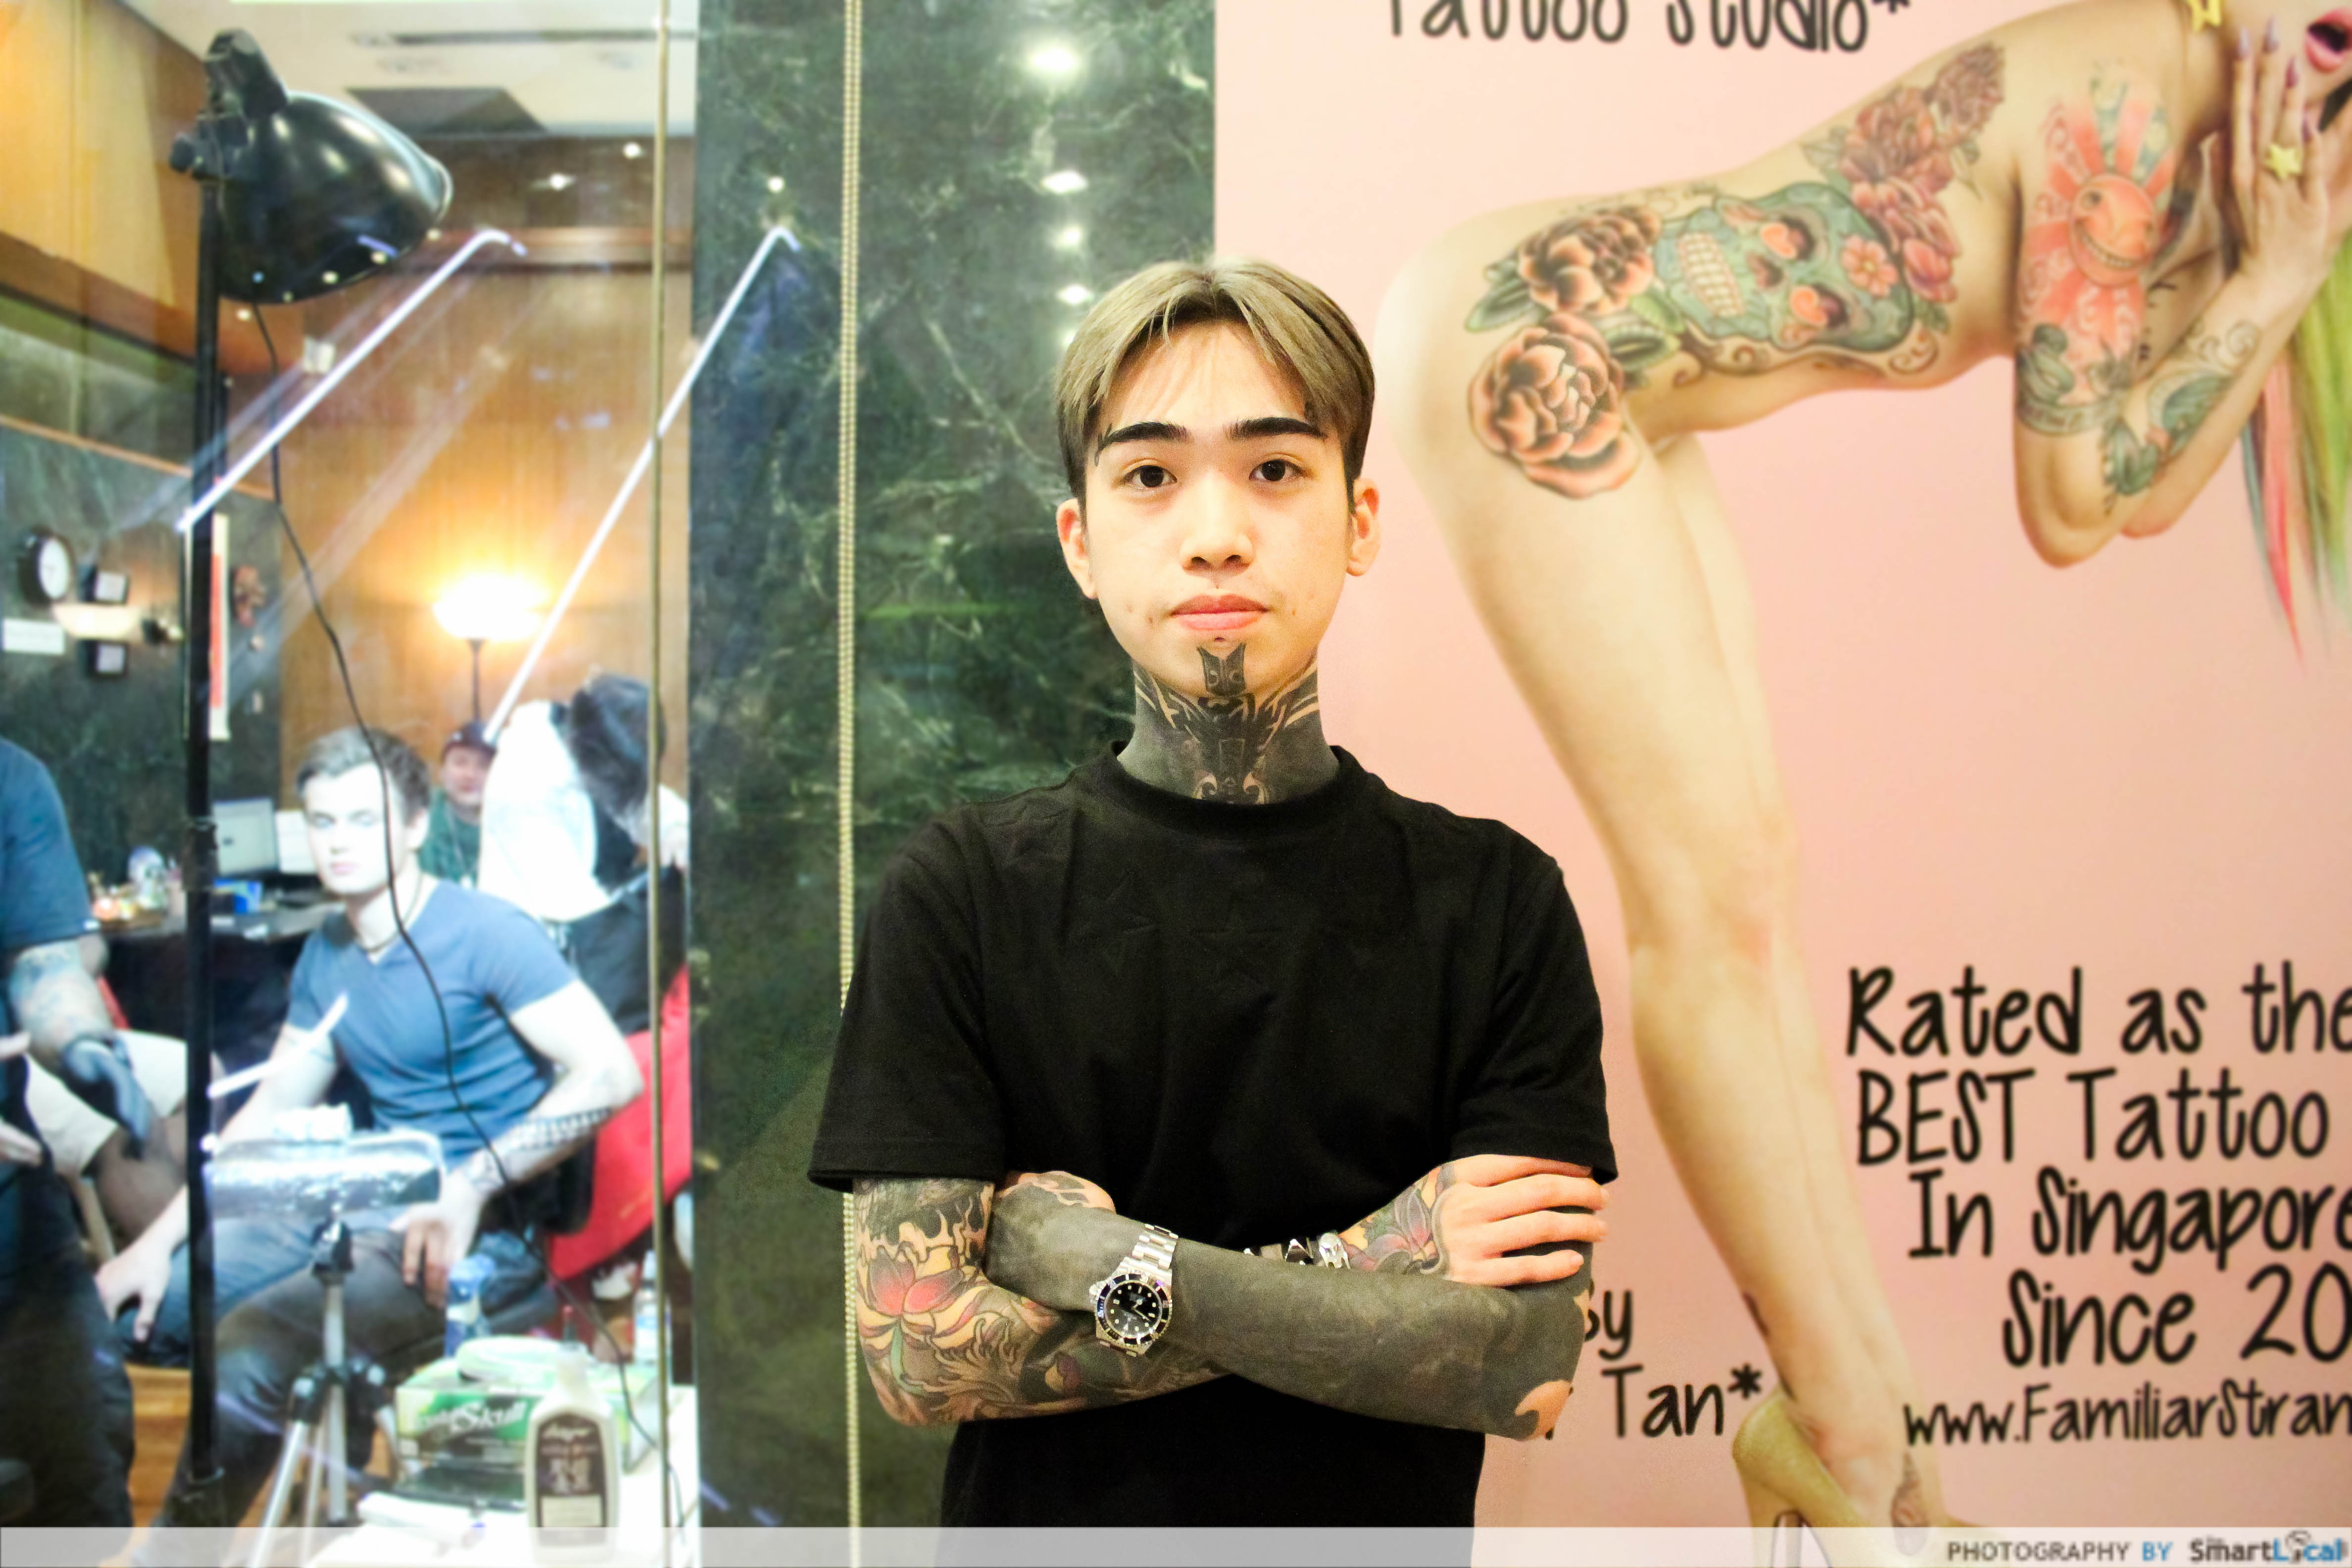 Tattoo Artists Of Singapore Questions You Ve Always Wanted To Ask